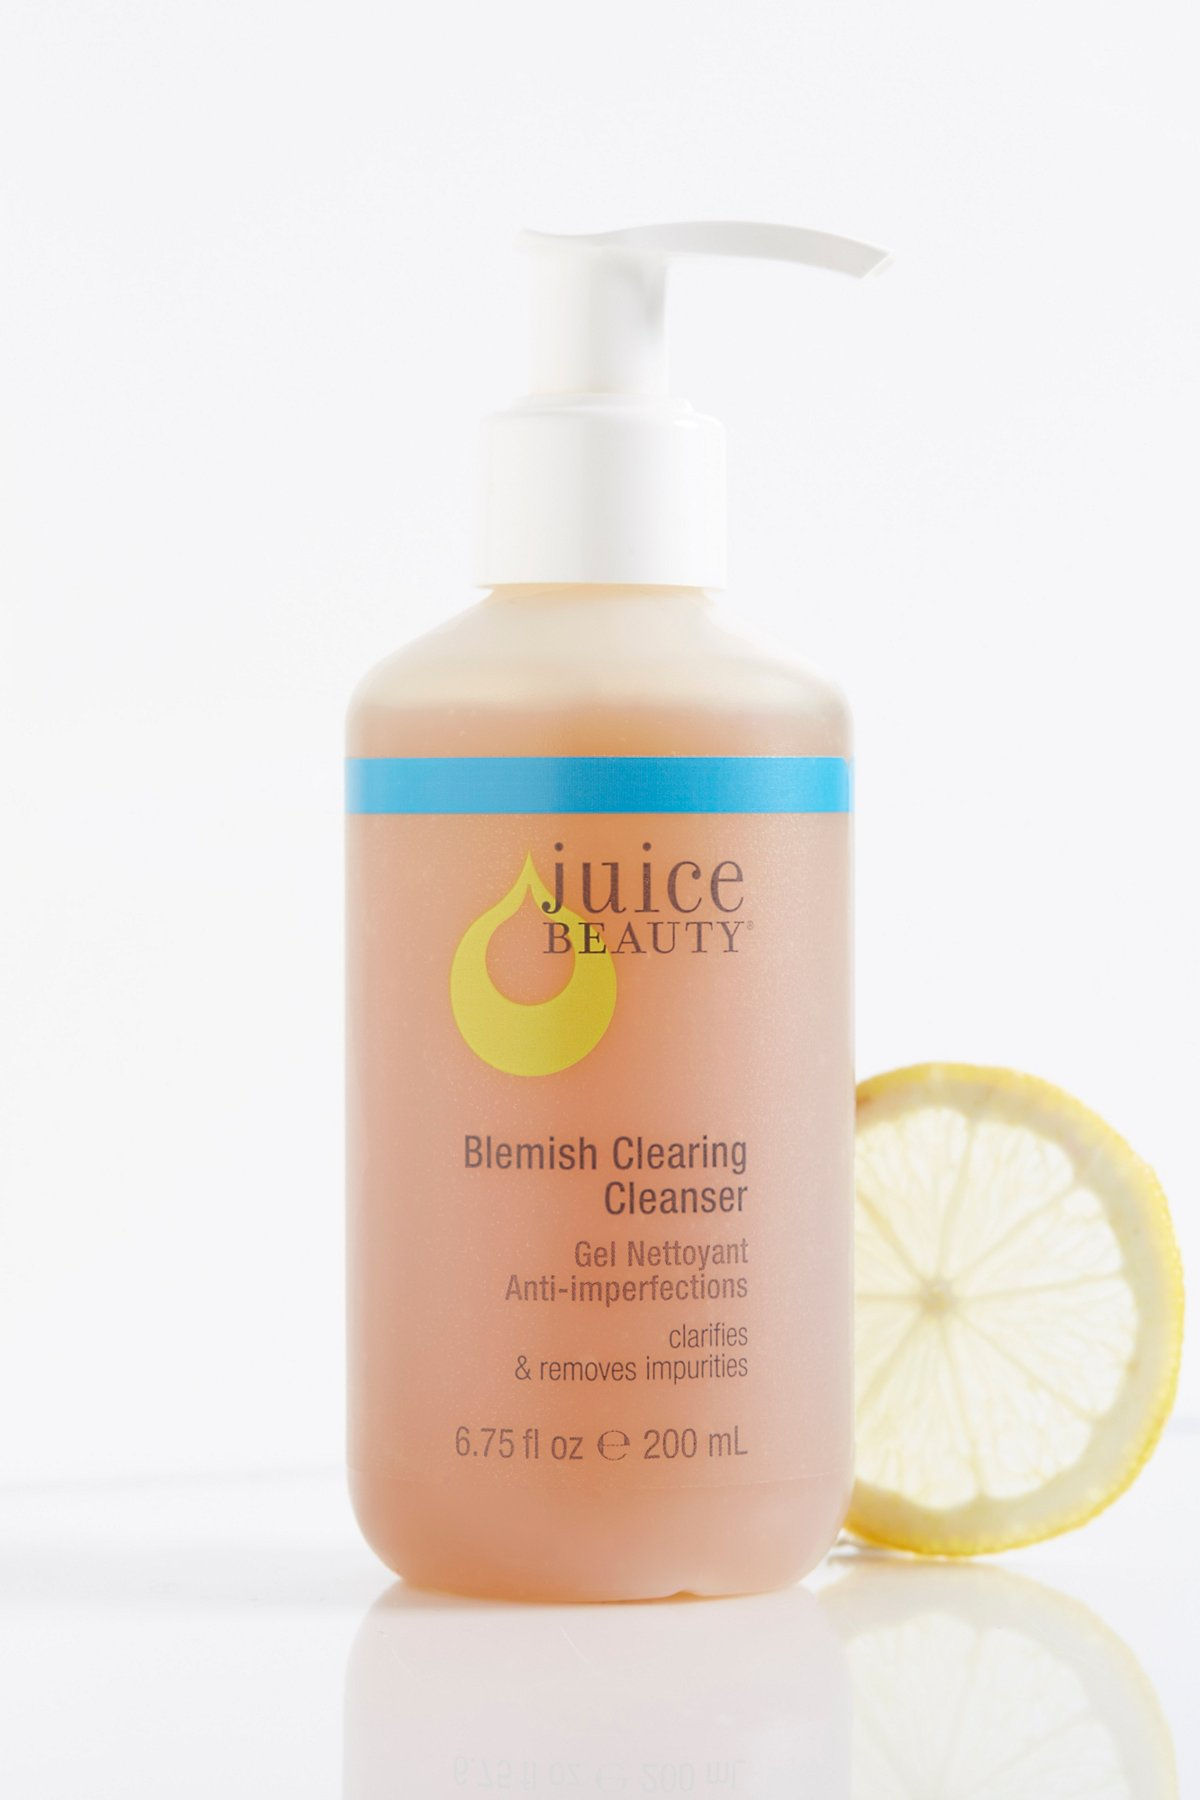 Blemish Clearing Cleanser